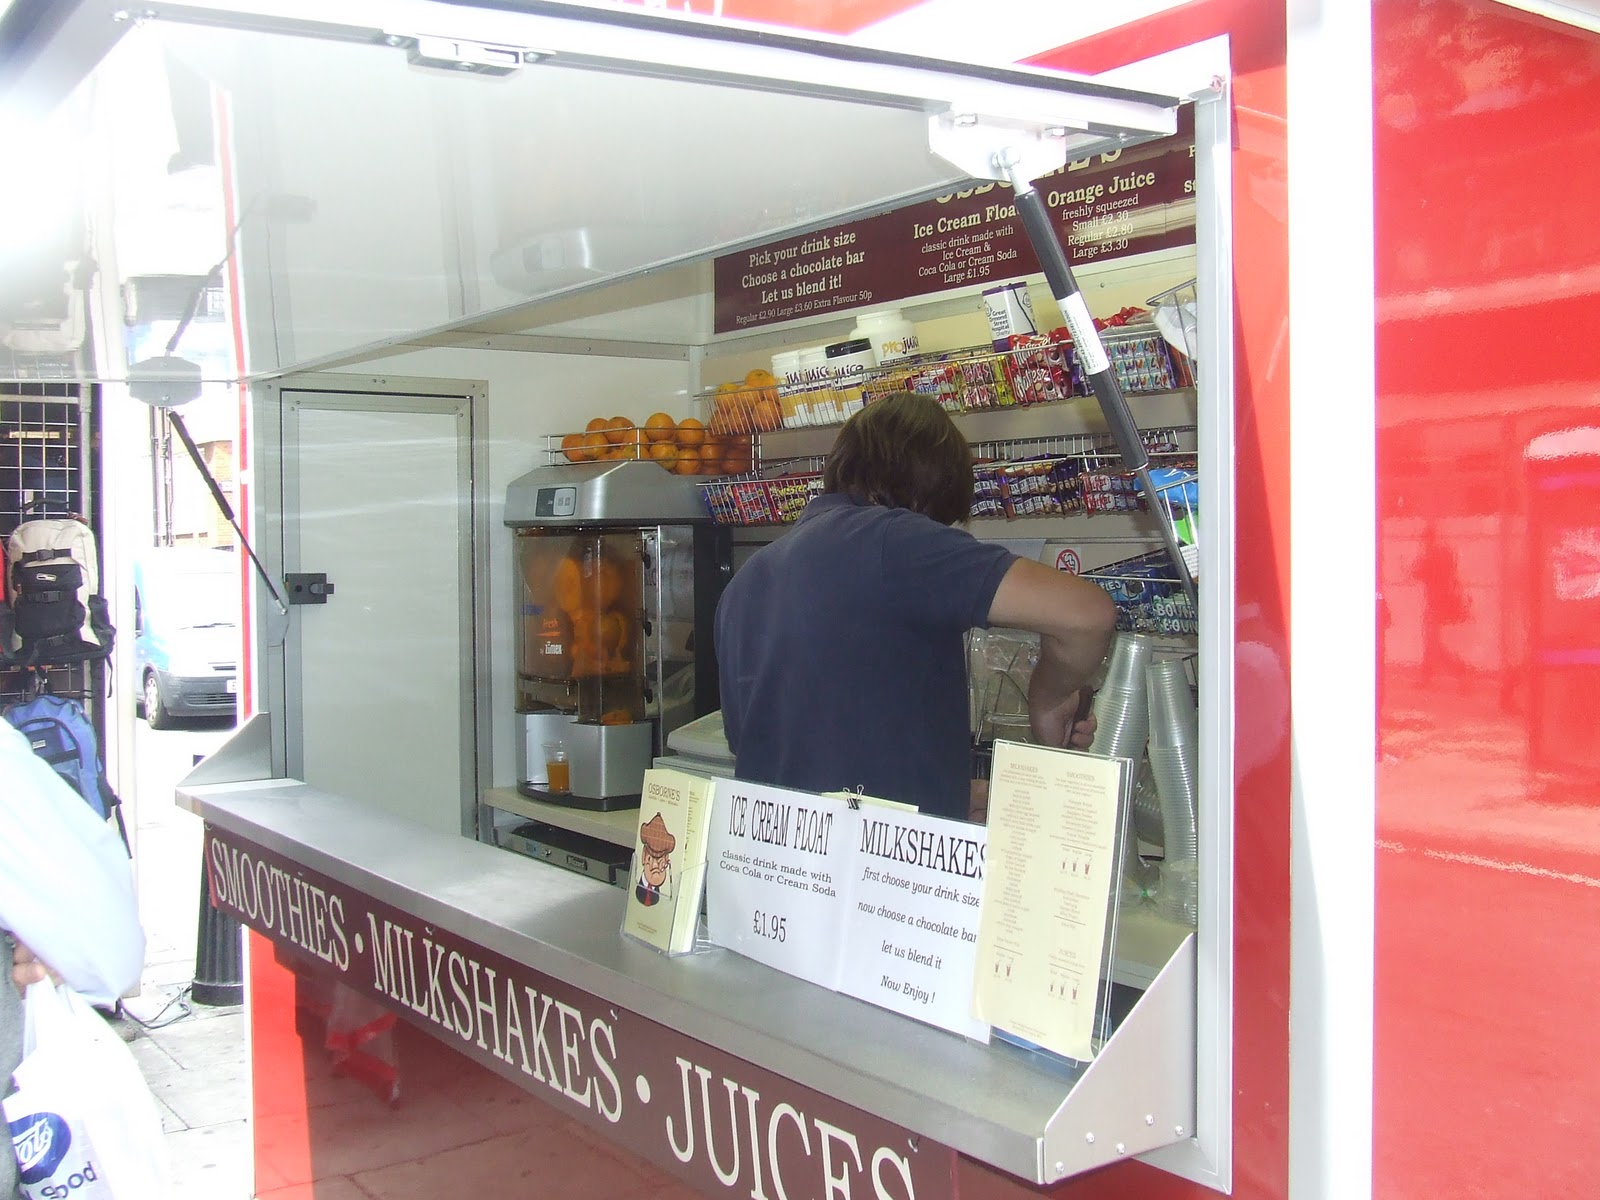 Edmund Evans Catering Trailers Street Food Units And